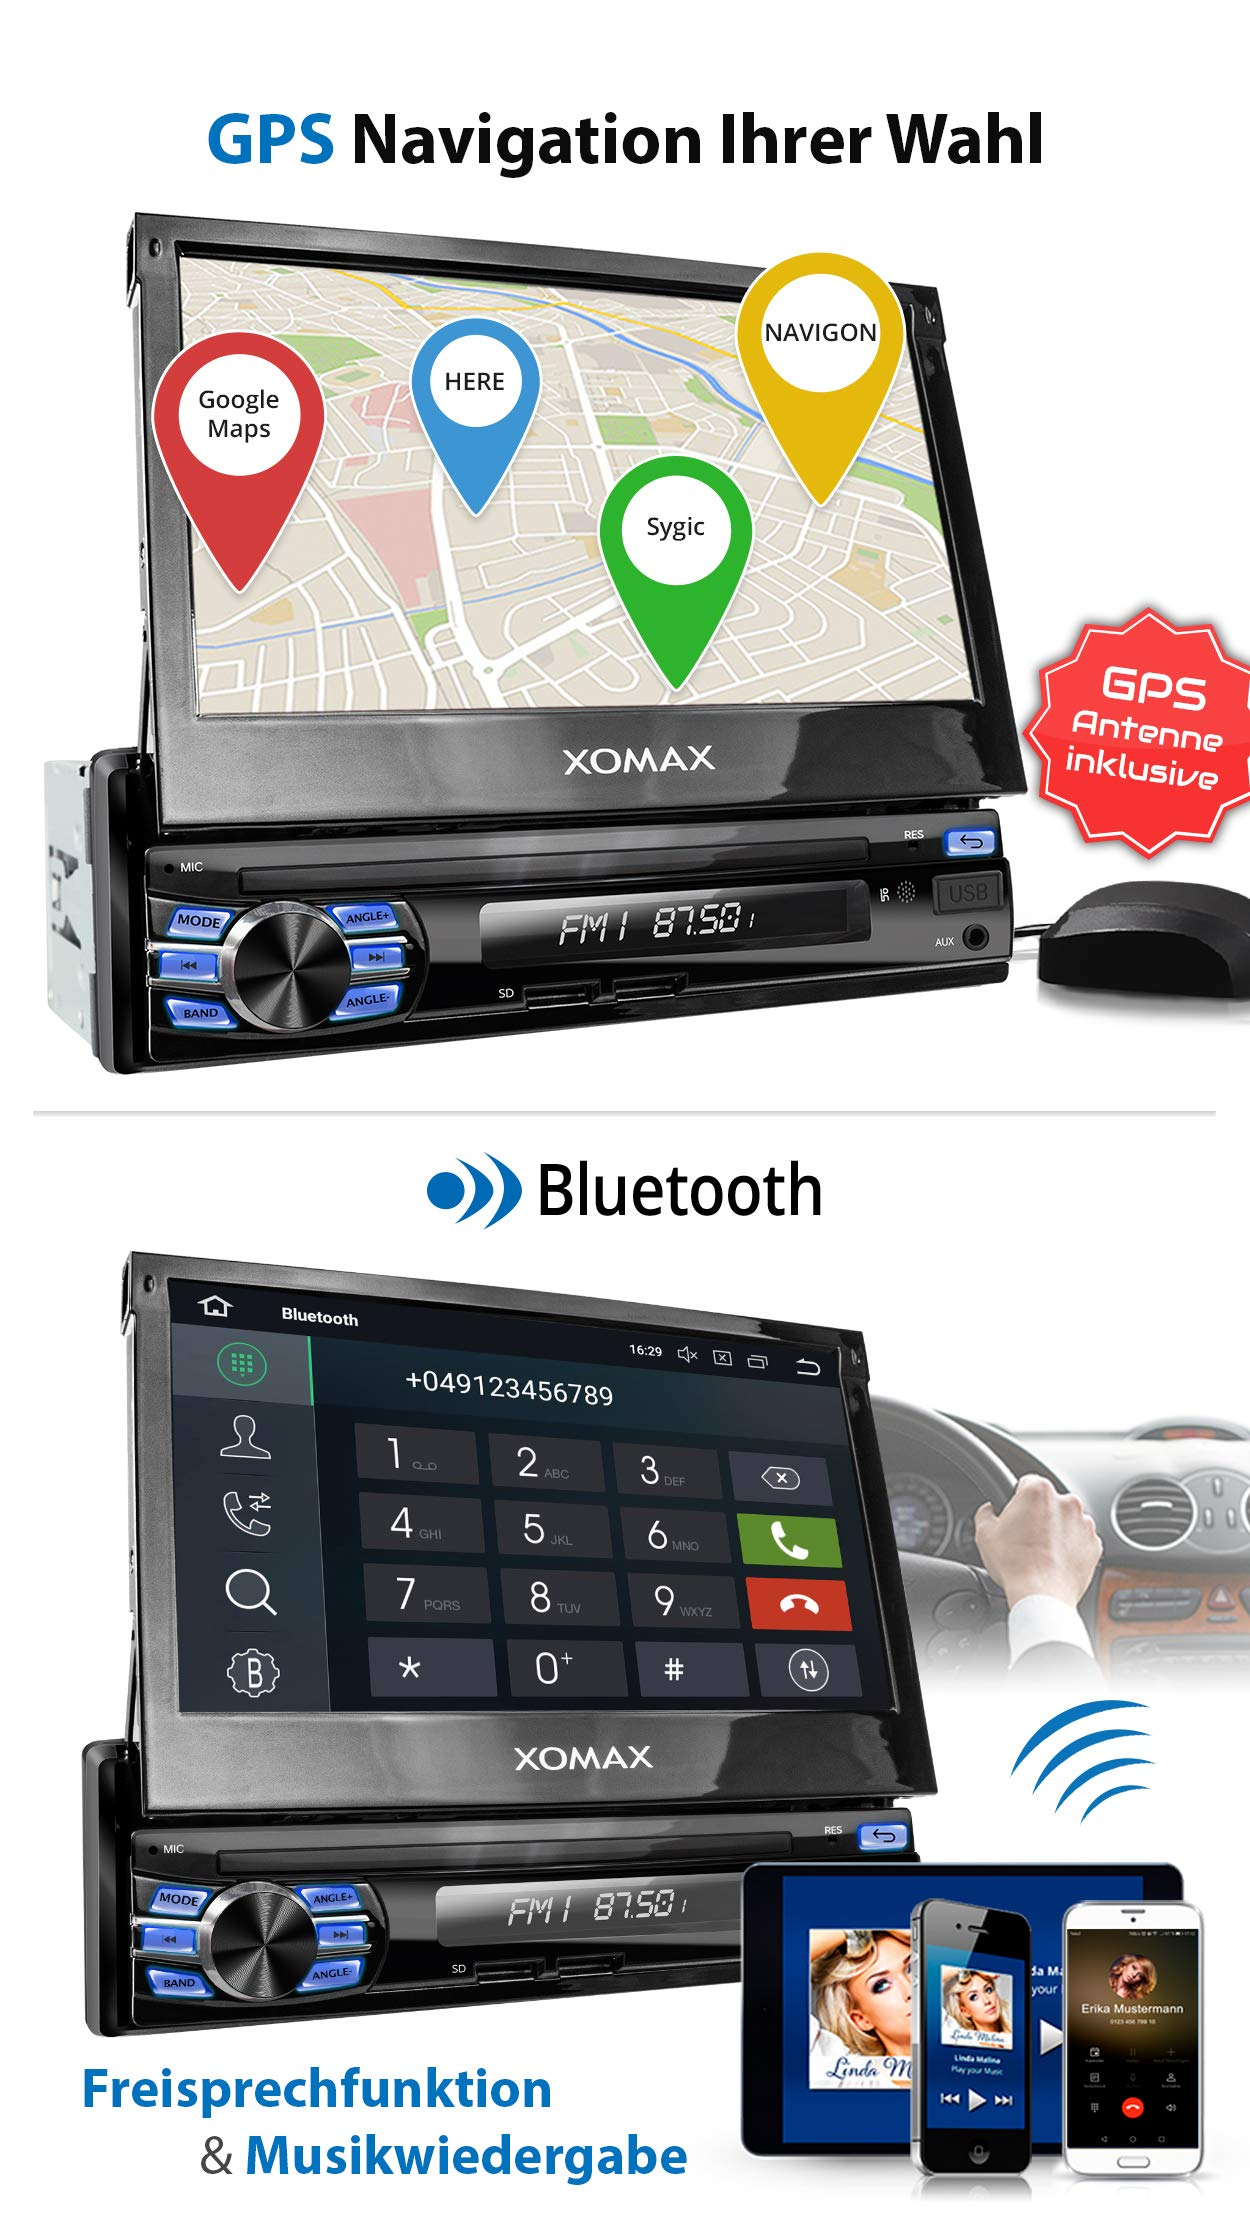 XOMAX-XM-VA707-Autoradio-mit-Android-81-QuadCore-2GB-RAM-16GB-ROM-GPS-Navigation-I-Support-WiFi-WLAN-3G-4G-DAB-OBD2-I-Bluetooth-7-Zoll-18-cm-Touchscreen-USB-SD-AUX-1-DIN